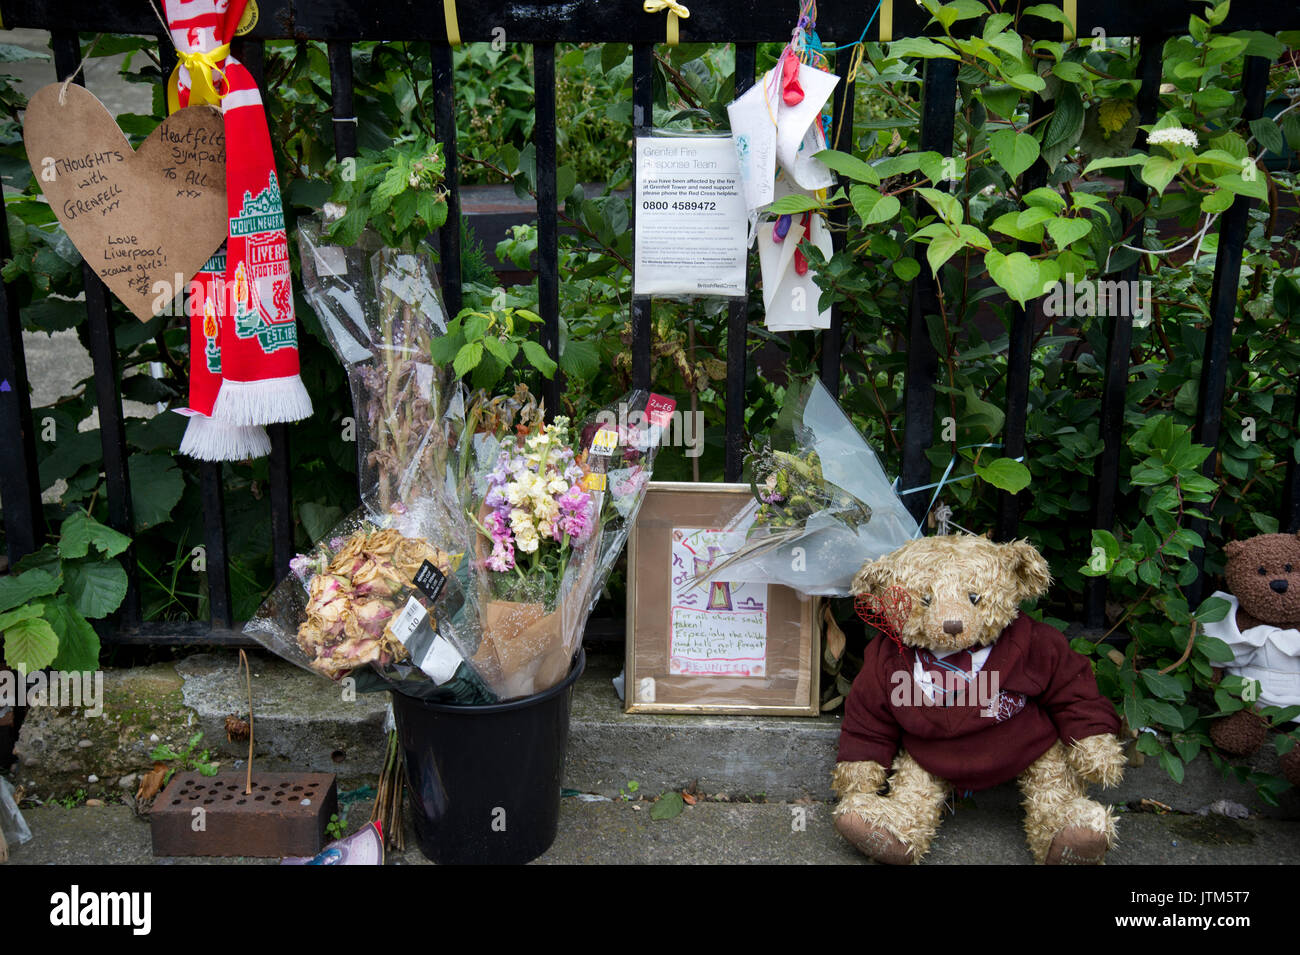 Grenfell Tower,Kensington, West London. Aftermath of the tragedy. memorial to victims of the fire.Flowers, teddy bear and football scarf. - Stock Image